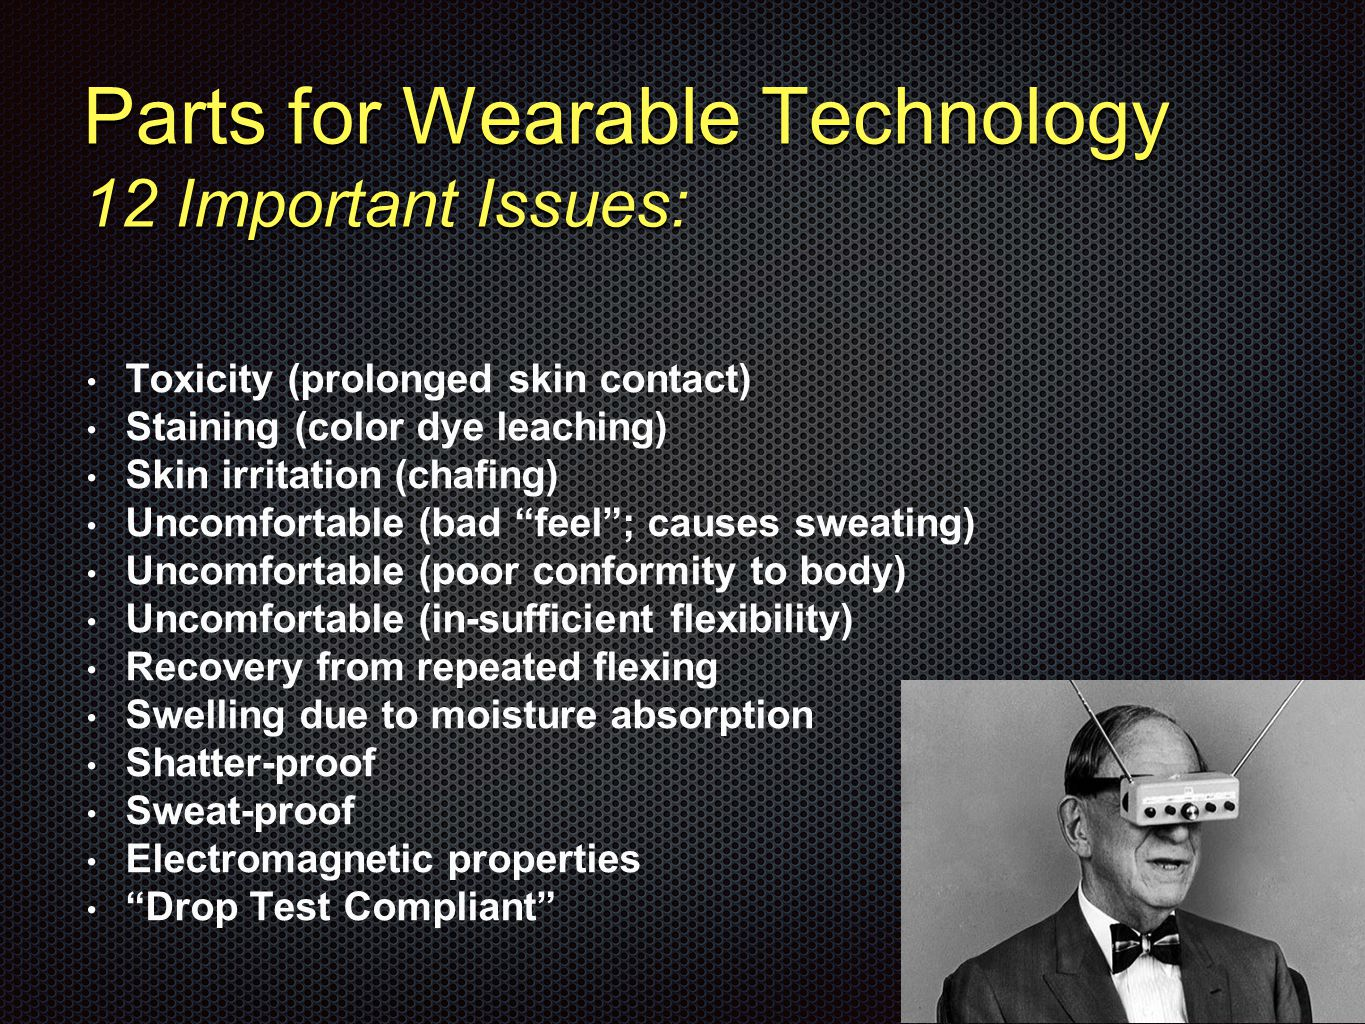 Parts for Wearable Technology 12 Important Issues: Toxicity (prolonged skin contact) Staining (color dye leaching) Skin irritation (chafing) Uncomfortable (bad feel ; causes sweating) Uncomfortable (poor conformity to body) Uncomfortable (in-sufficient flexibility) Recovery from repeated flexing Swelling due to moisture absorption Shatter-proof Sweat-proof Electromagnetic properties Drop Test Compliant